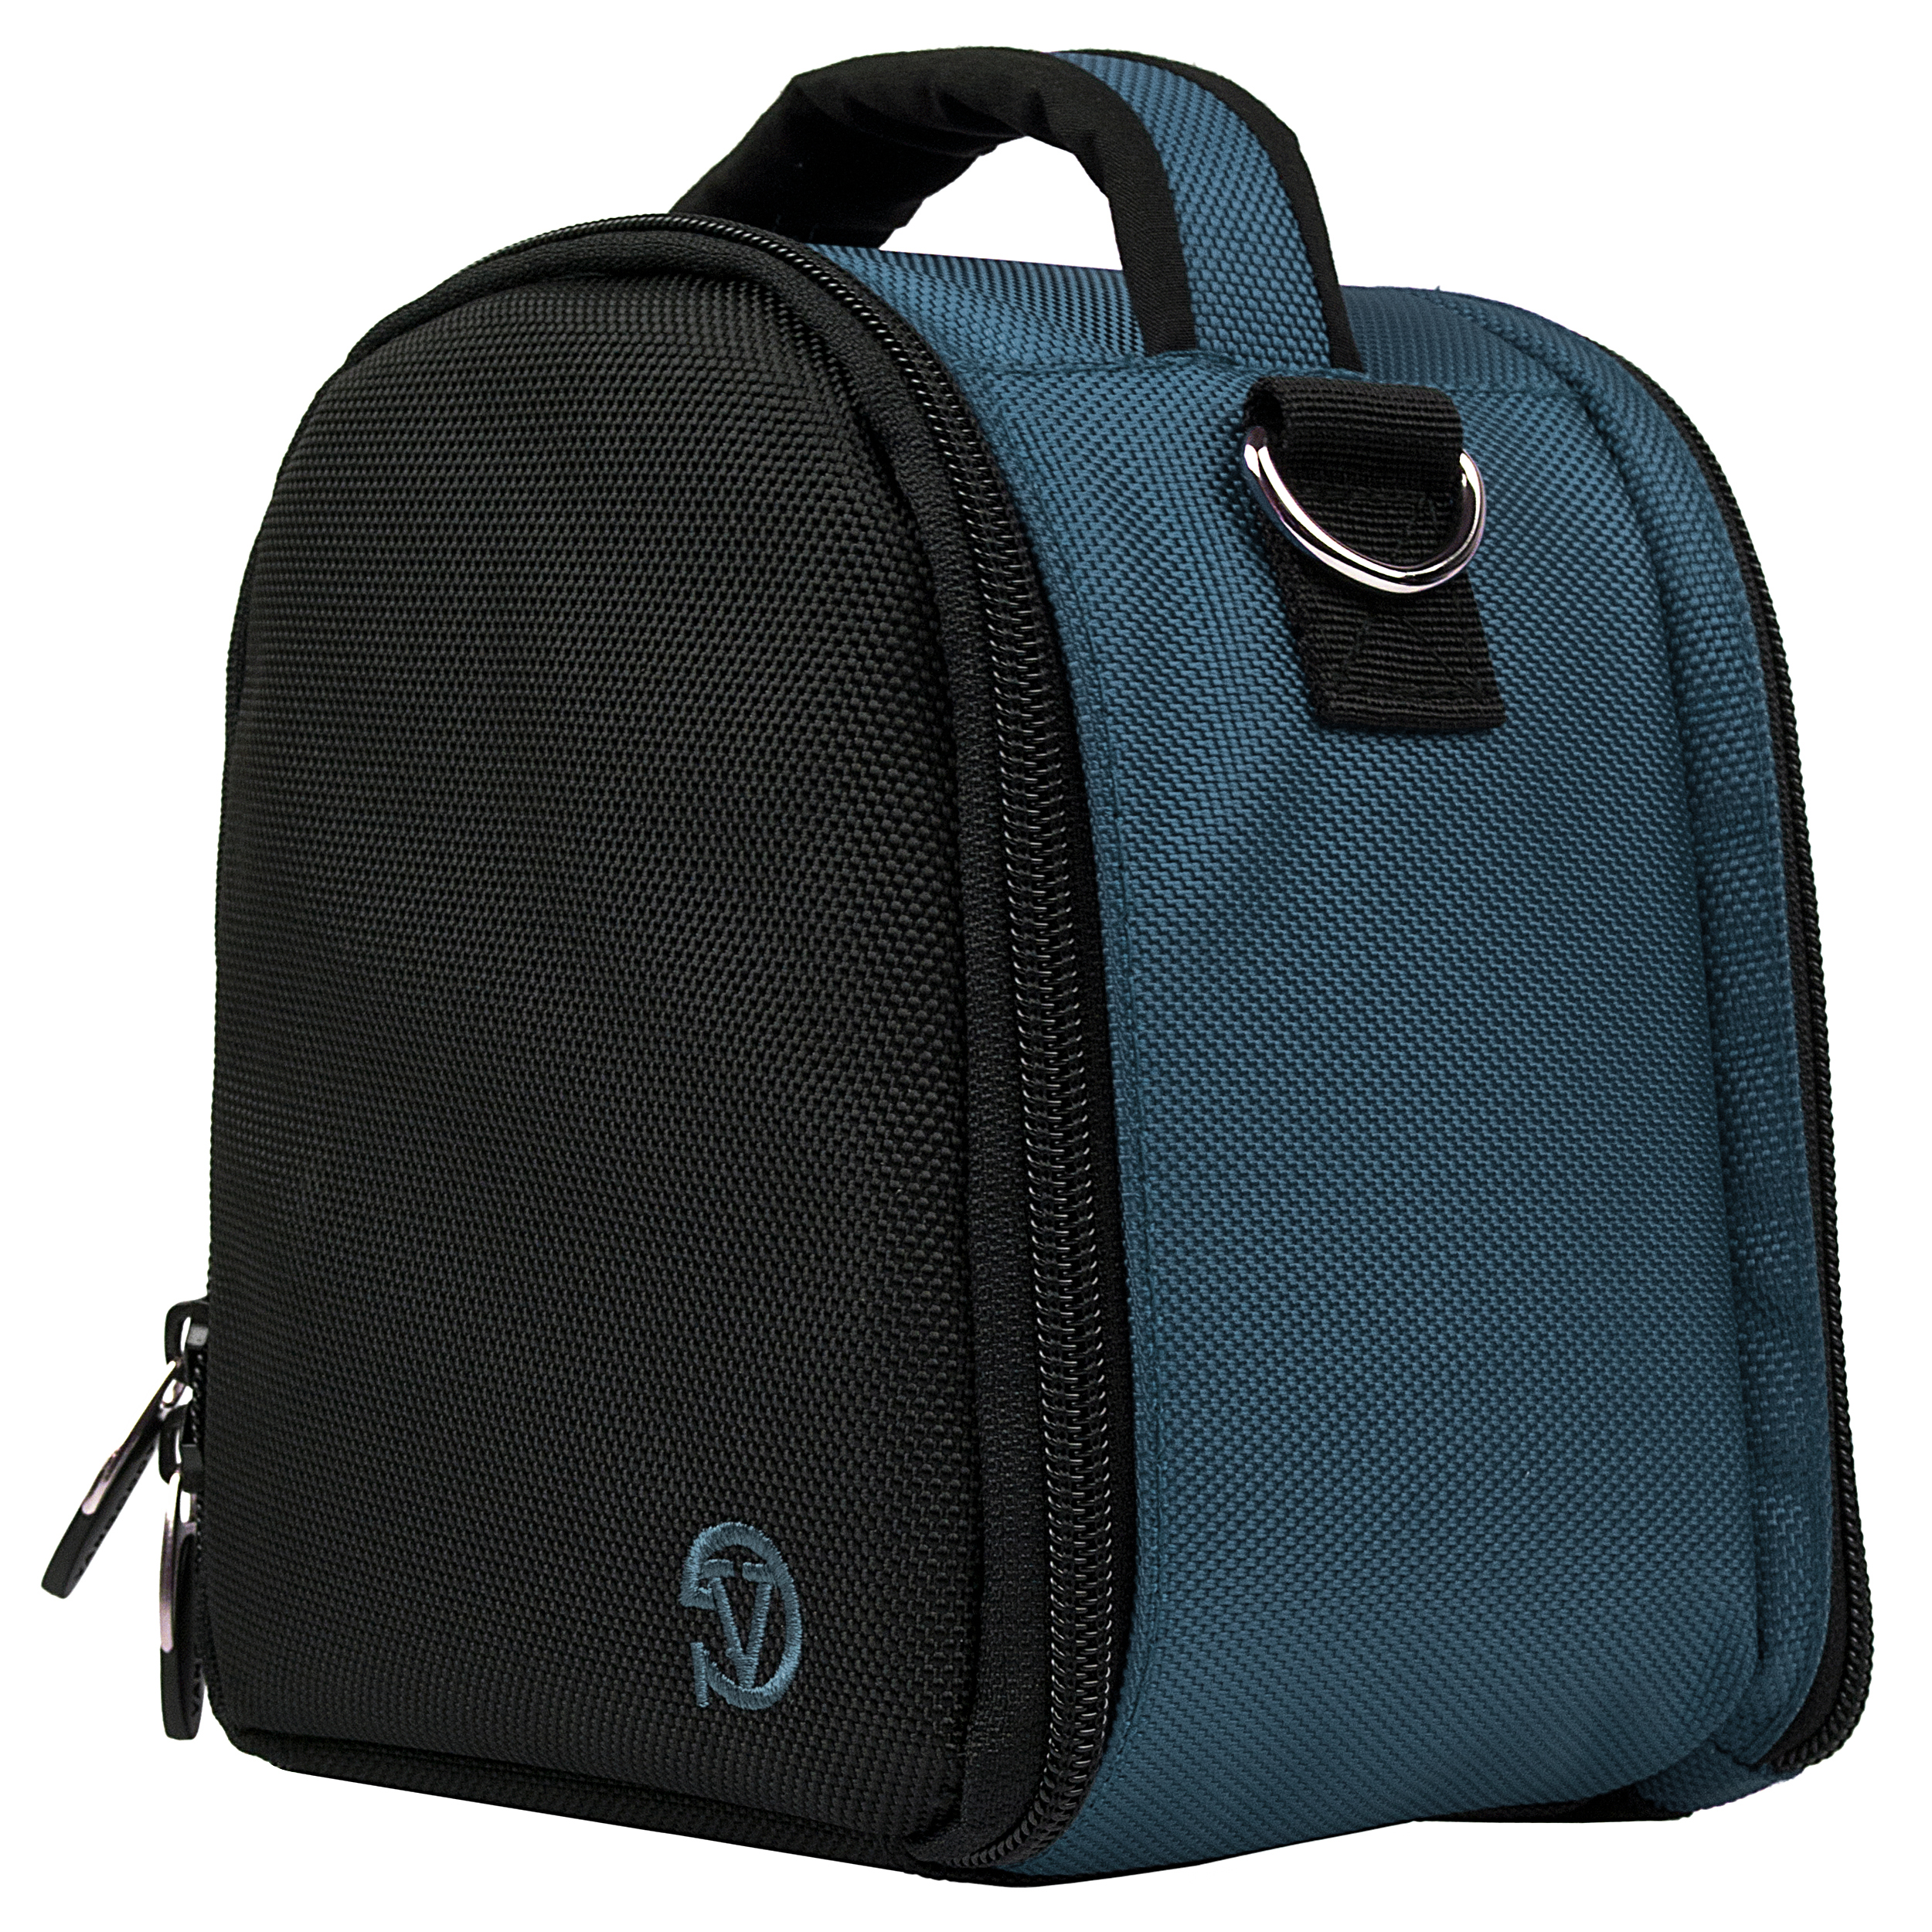 Laurel Case for DSLR Cameras  (Navy Blue)